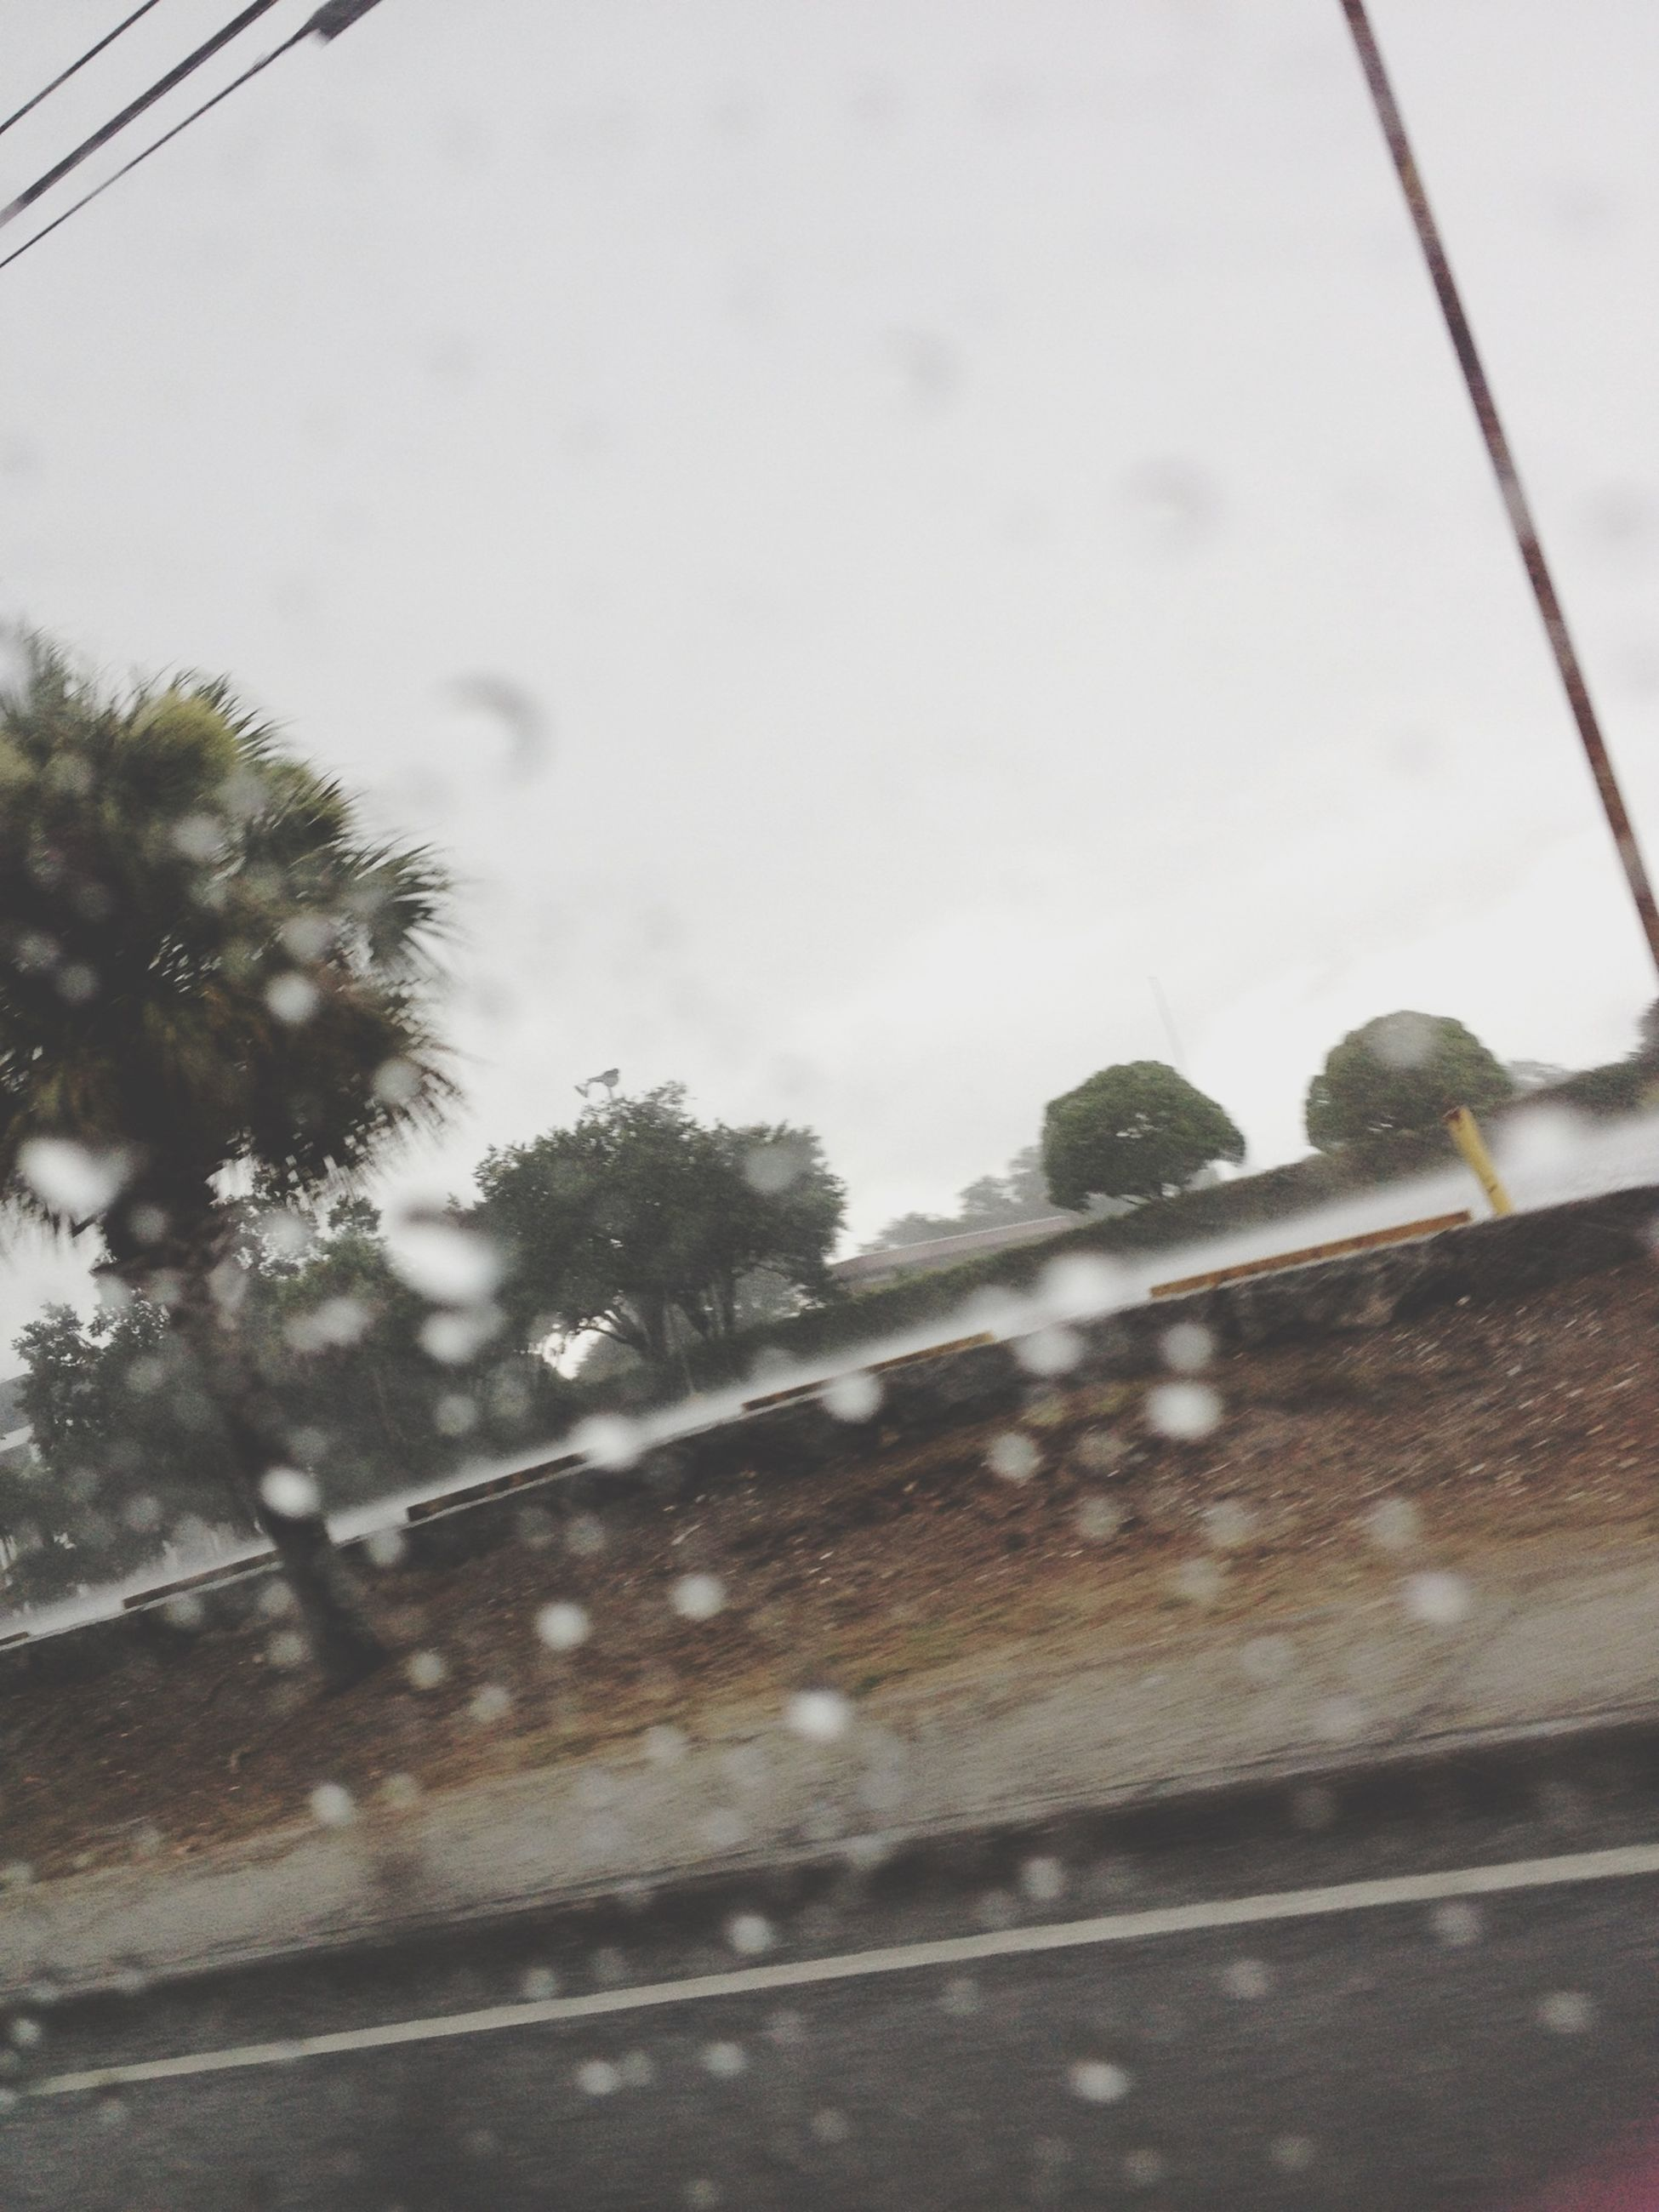 transportation, sky, tree, wet, land vehicle, mode of transport, low angle view, rain, weather, close-up, road, day, car, street, power line, glass - material, no people, vehicle interior, drop, window